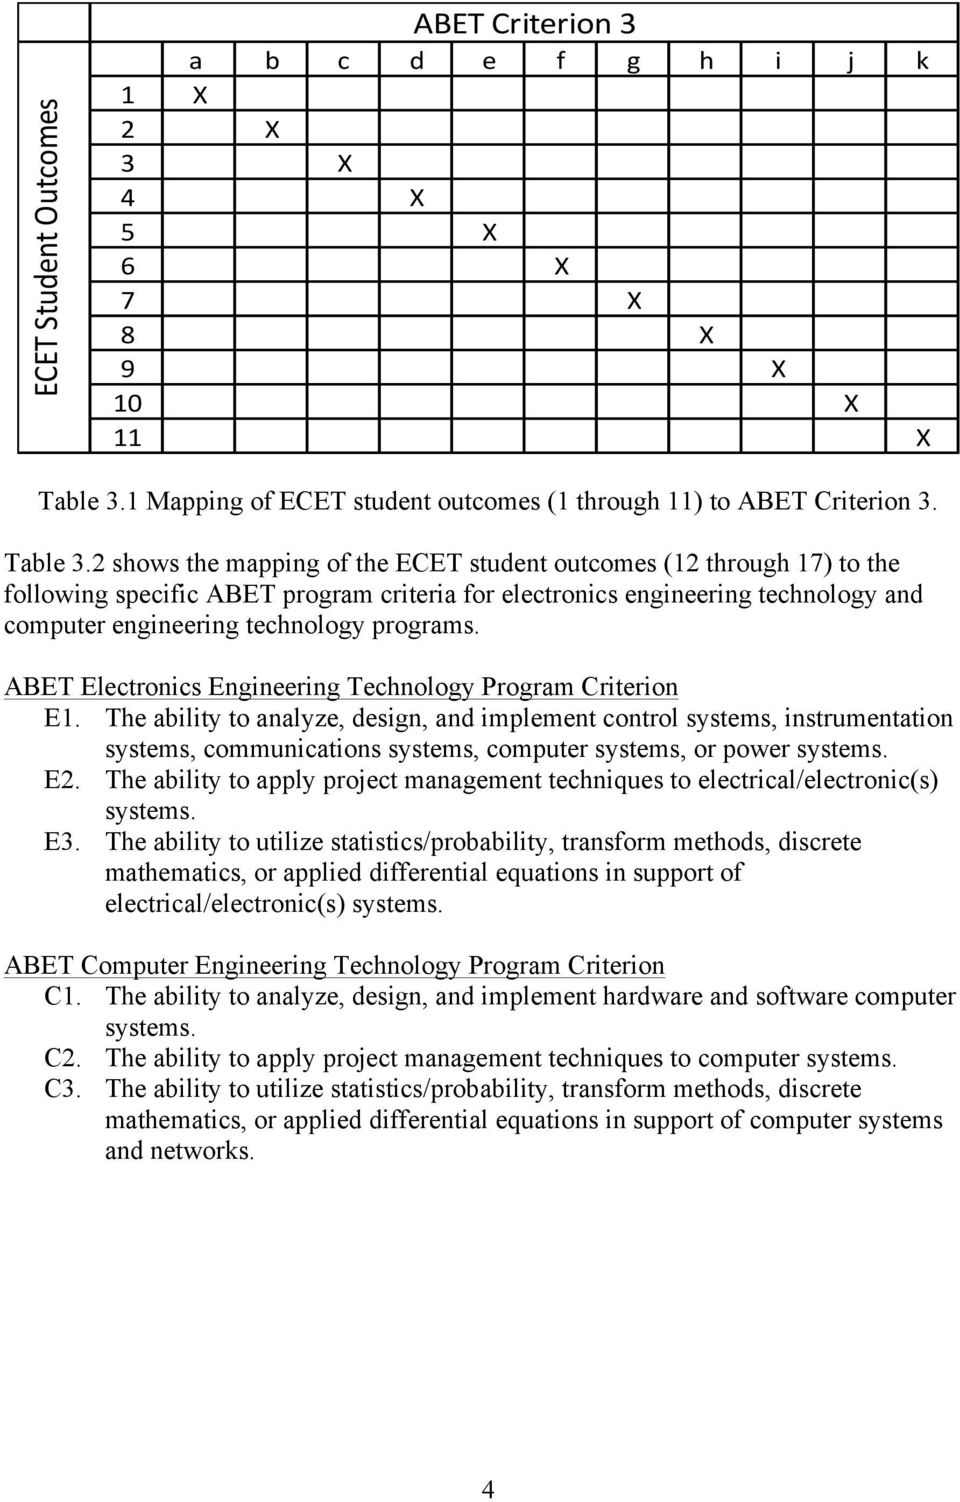 2 shows the mapping of the ECET student outcomes (12 through 17) to the following specific ABET program criteria for electronics engineering technology and computer engineering technology programs.